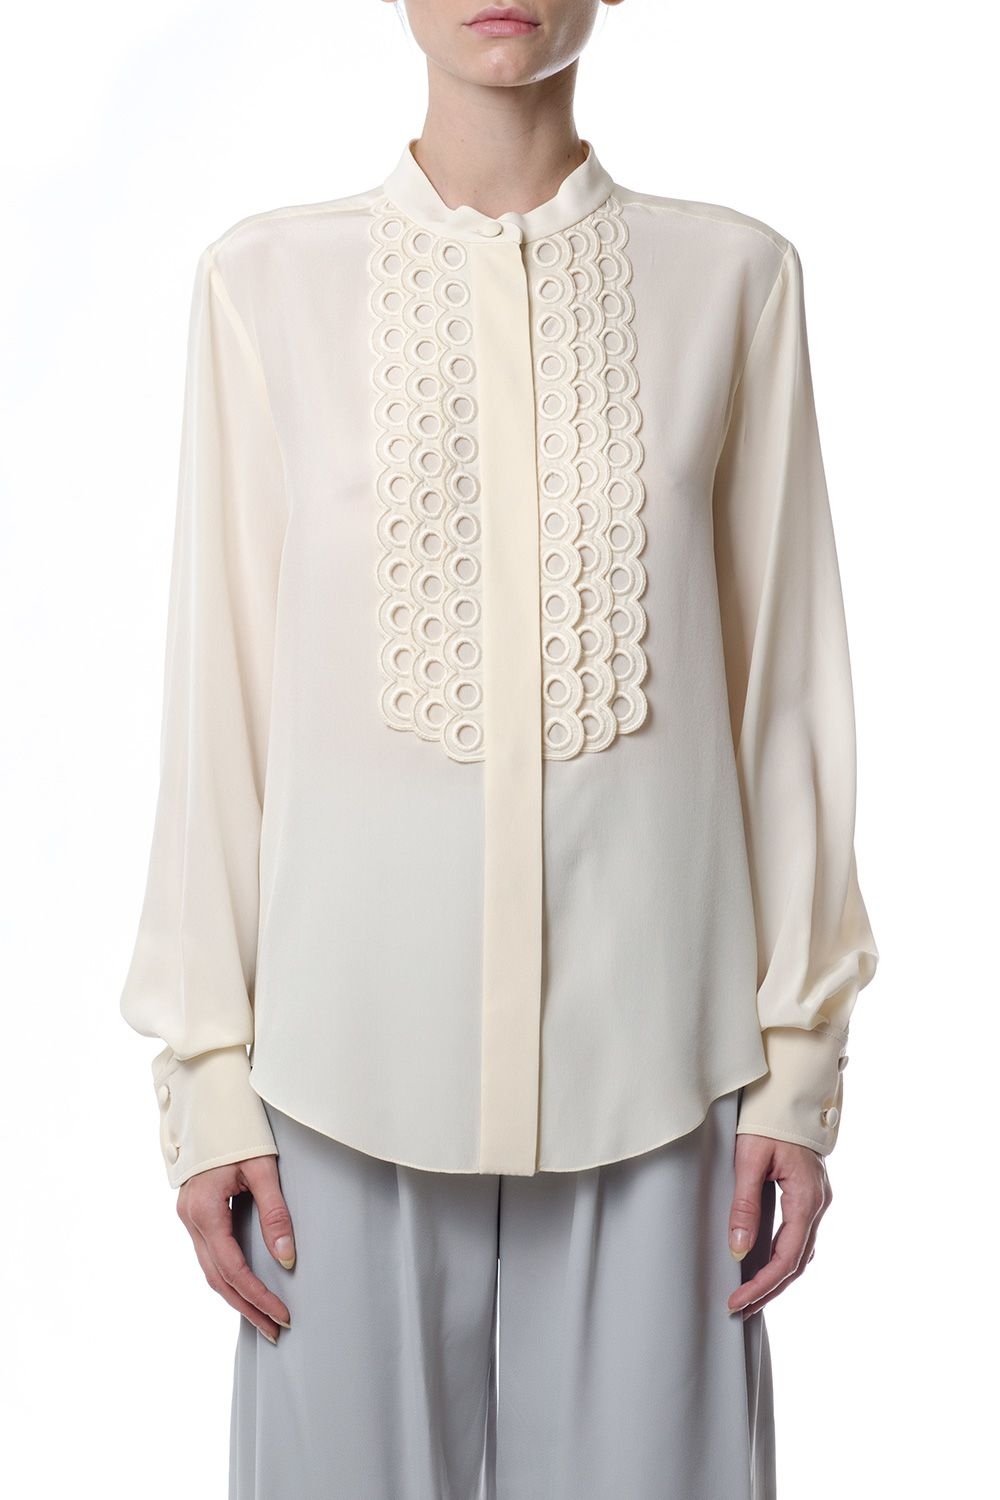 Chloé Mandarin Collar Silk Shirt